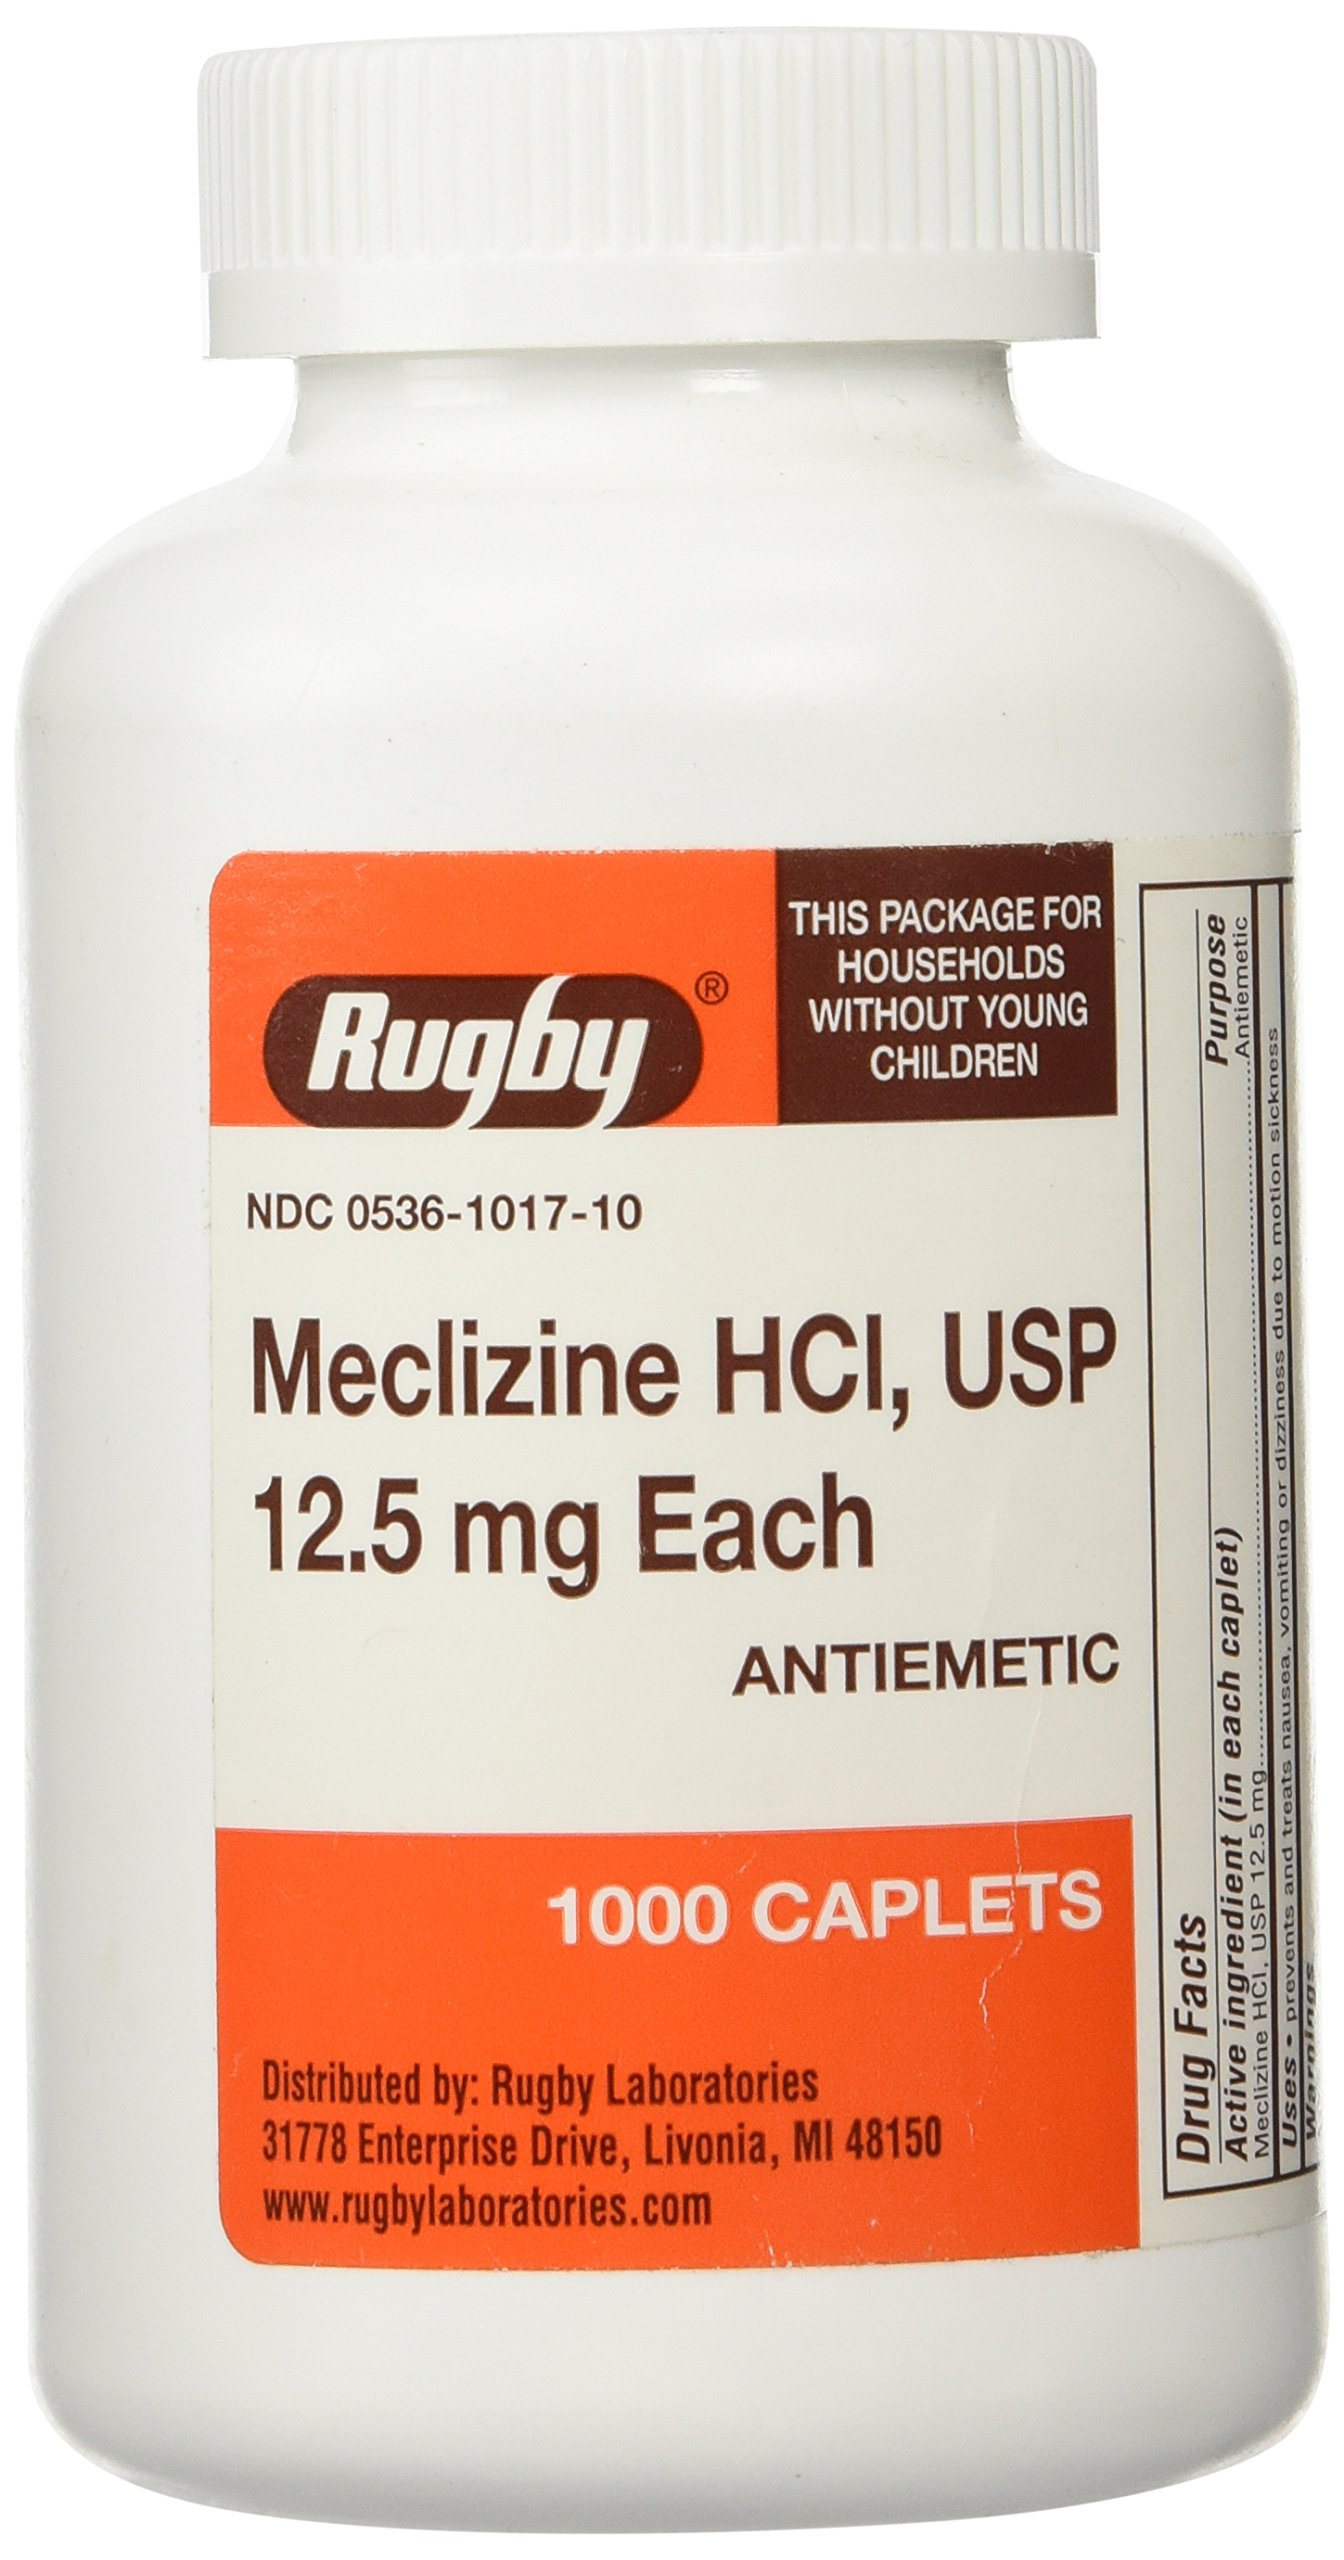 MECLIZINE TABS 12.5 MG OTC*RUG Size: 1000 by RUGBY LABORATORIES